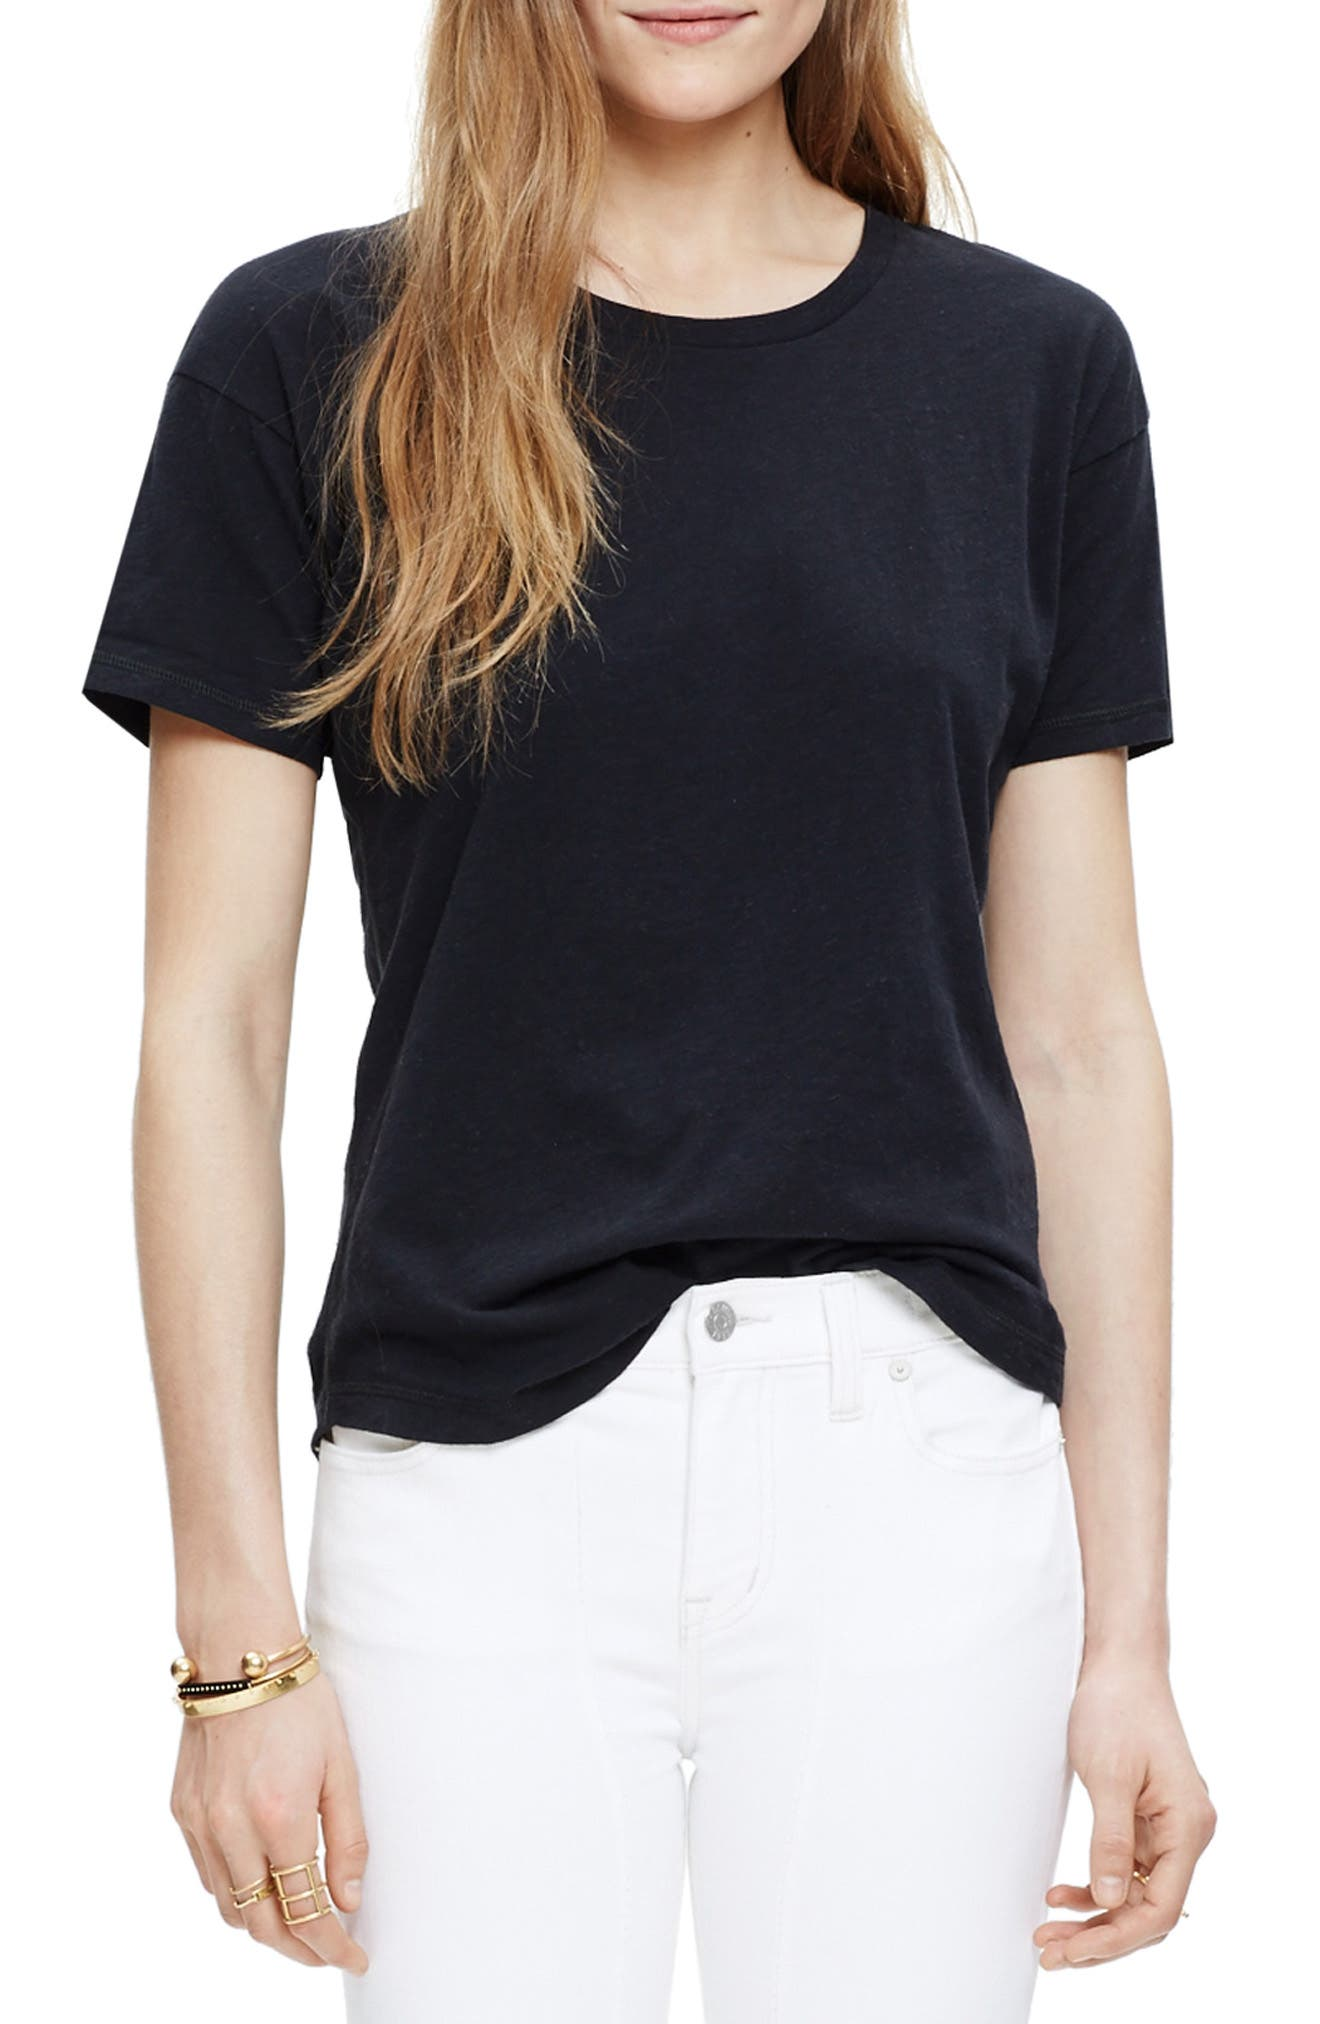 MADEWELL 'Whisper' Cotton Crewneck Tee, Main, color, TRUE BLACK